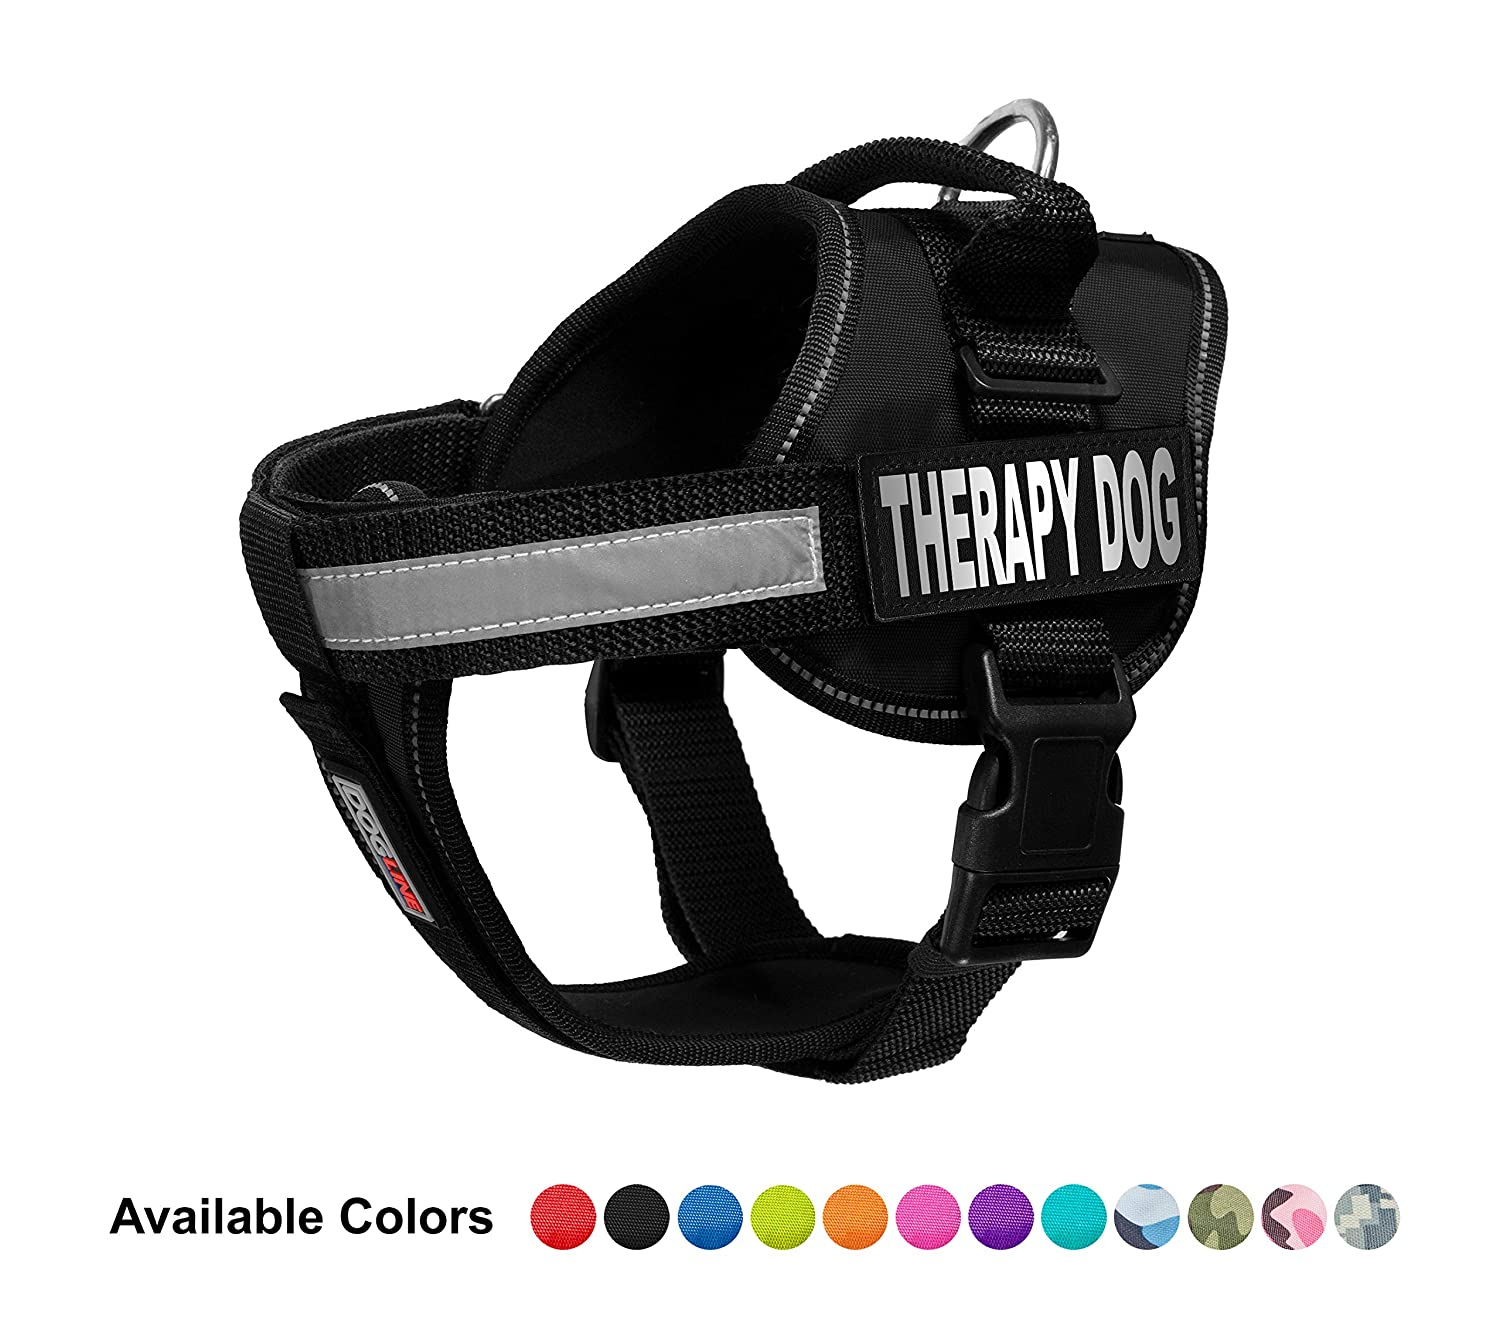 Black Extra Large (36\ Black Extra Large (36\ Dogline Vest Harness for Dogs and 2 Removable Therapy Dog Patches, X-Large 36 to 46 , Black